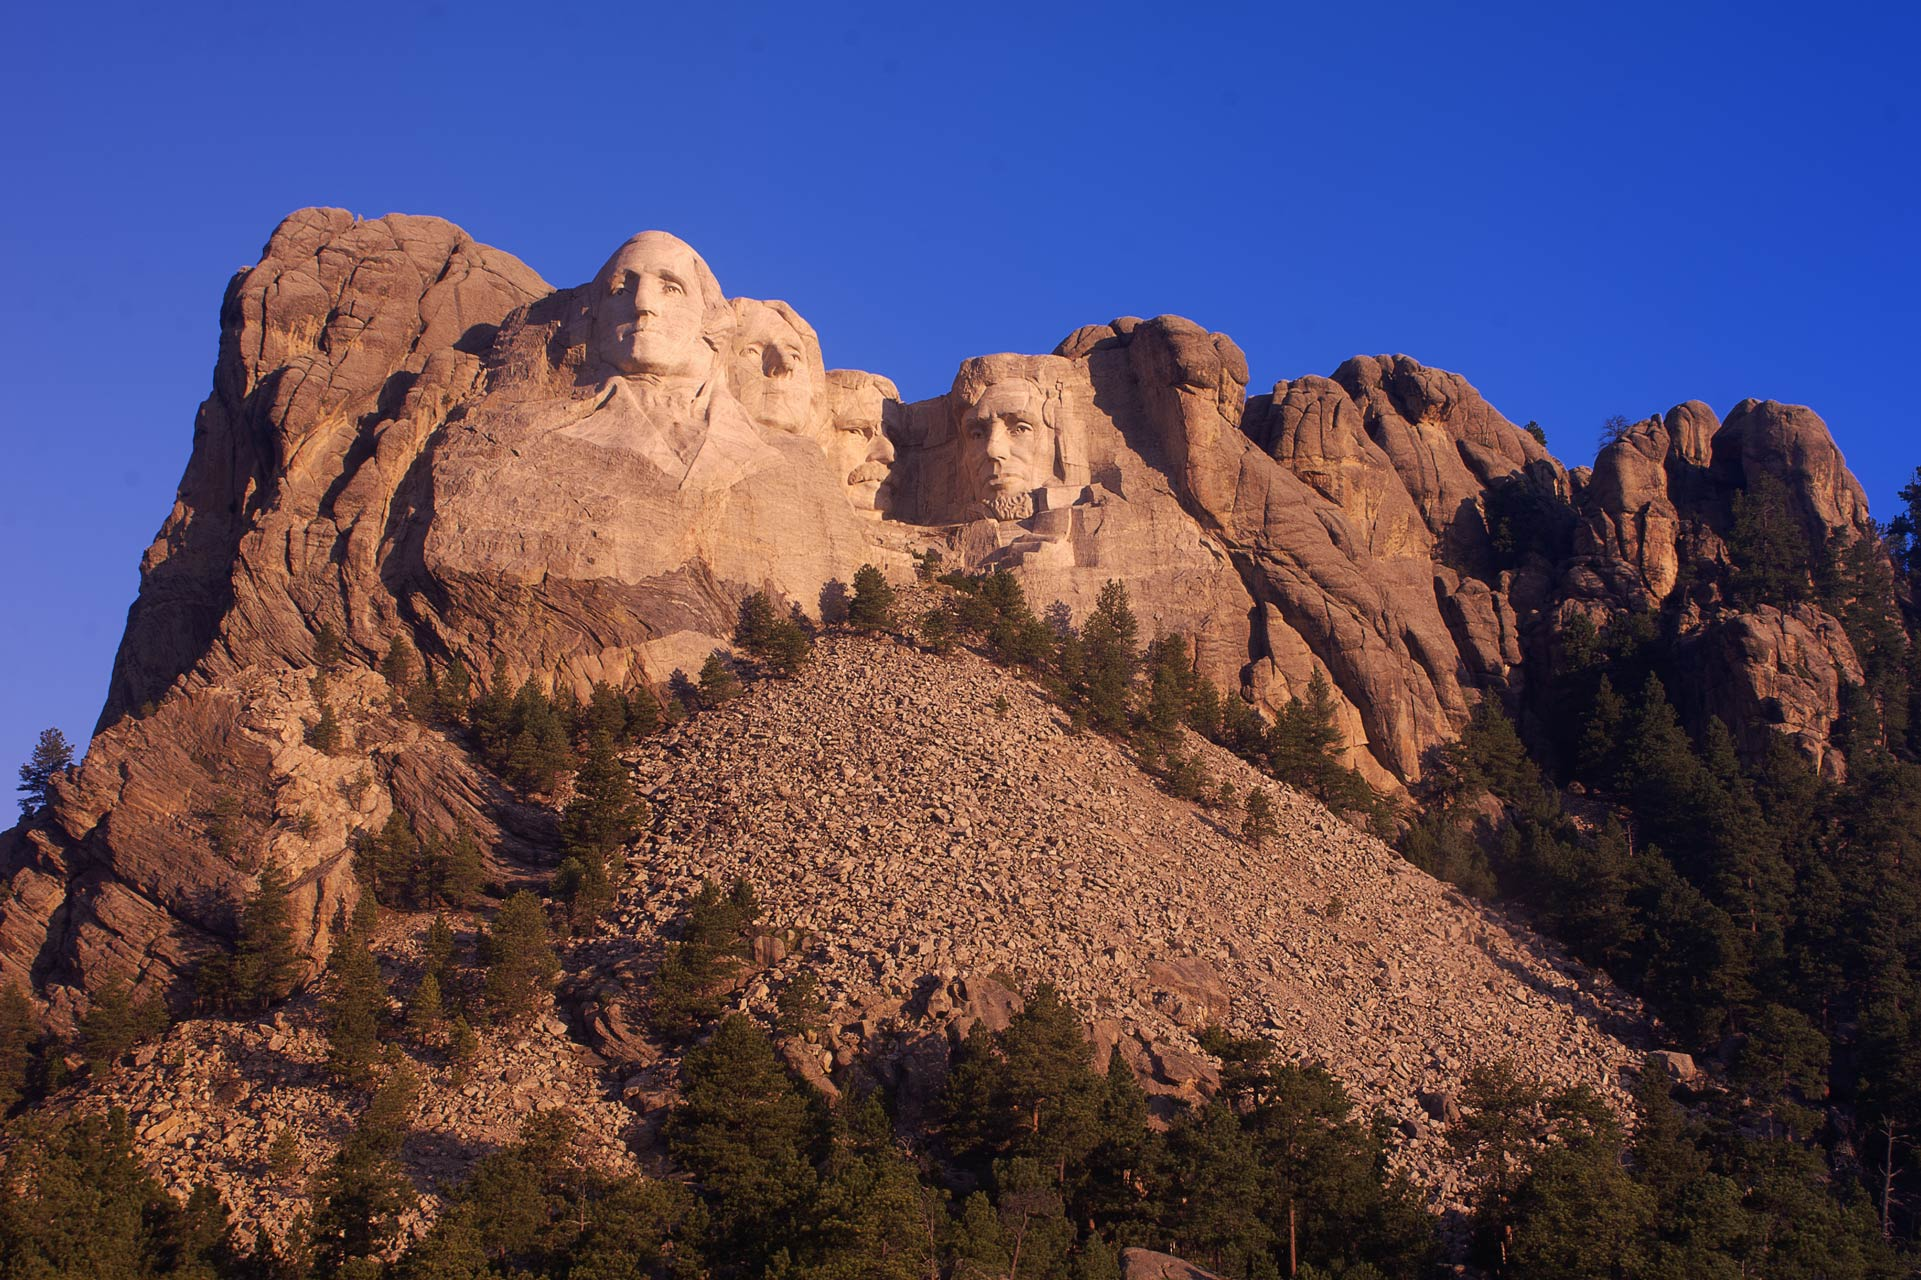 Mount-Rushmore-HDR-WEB